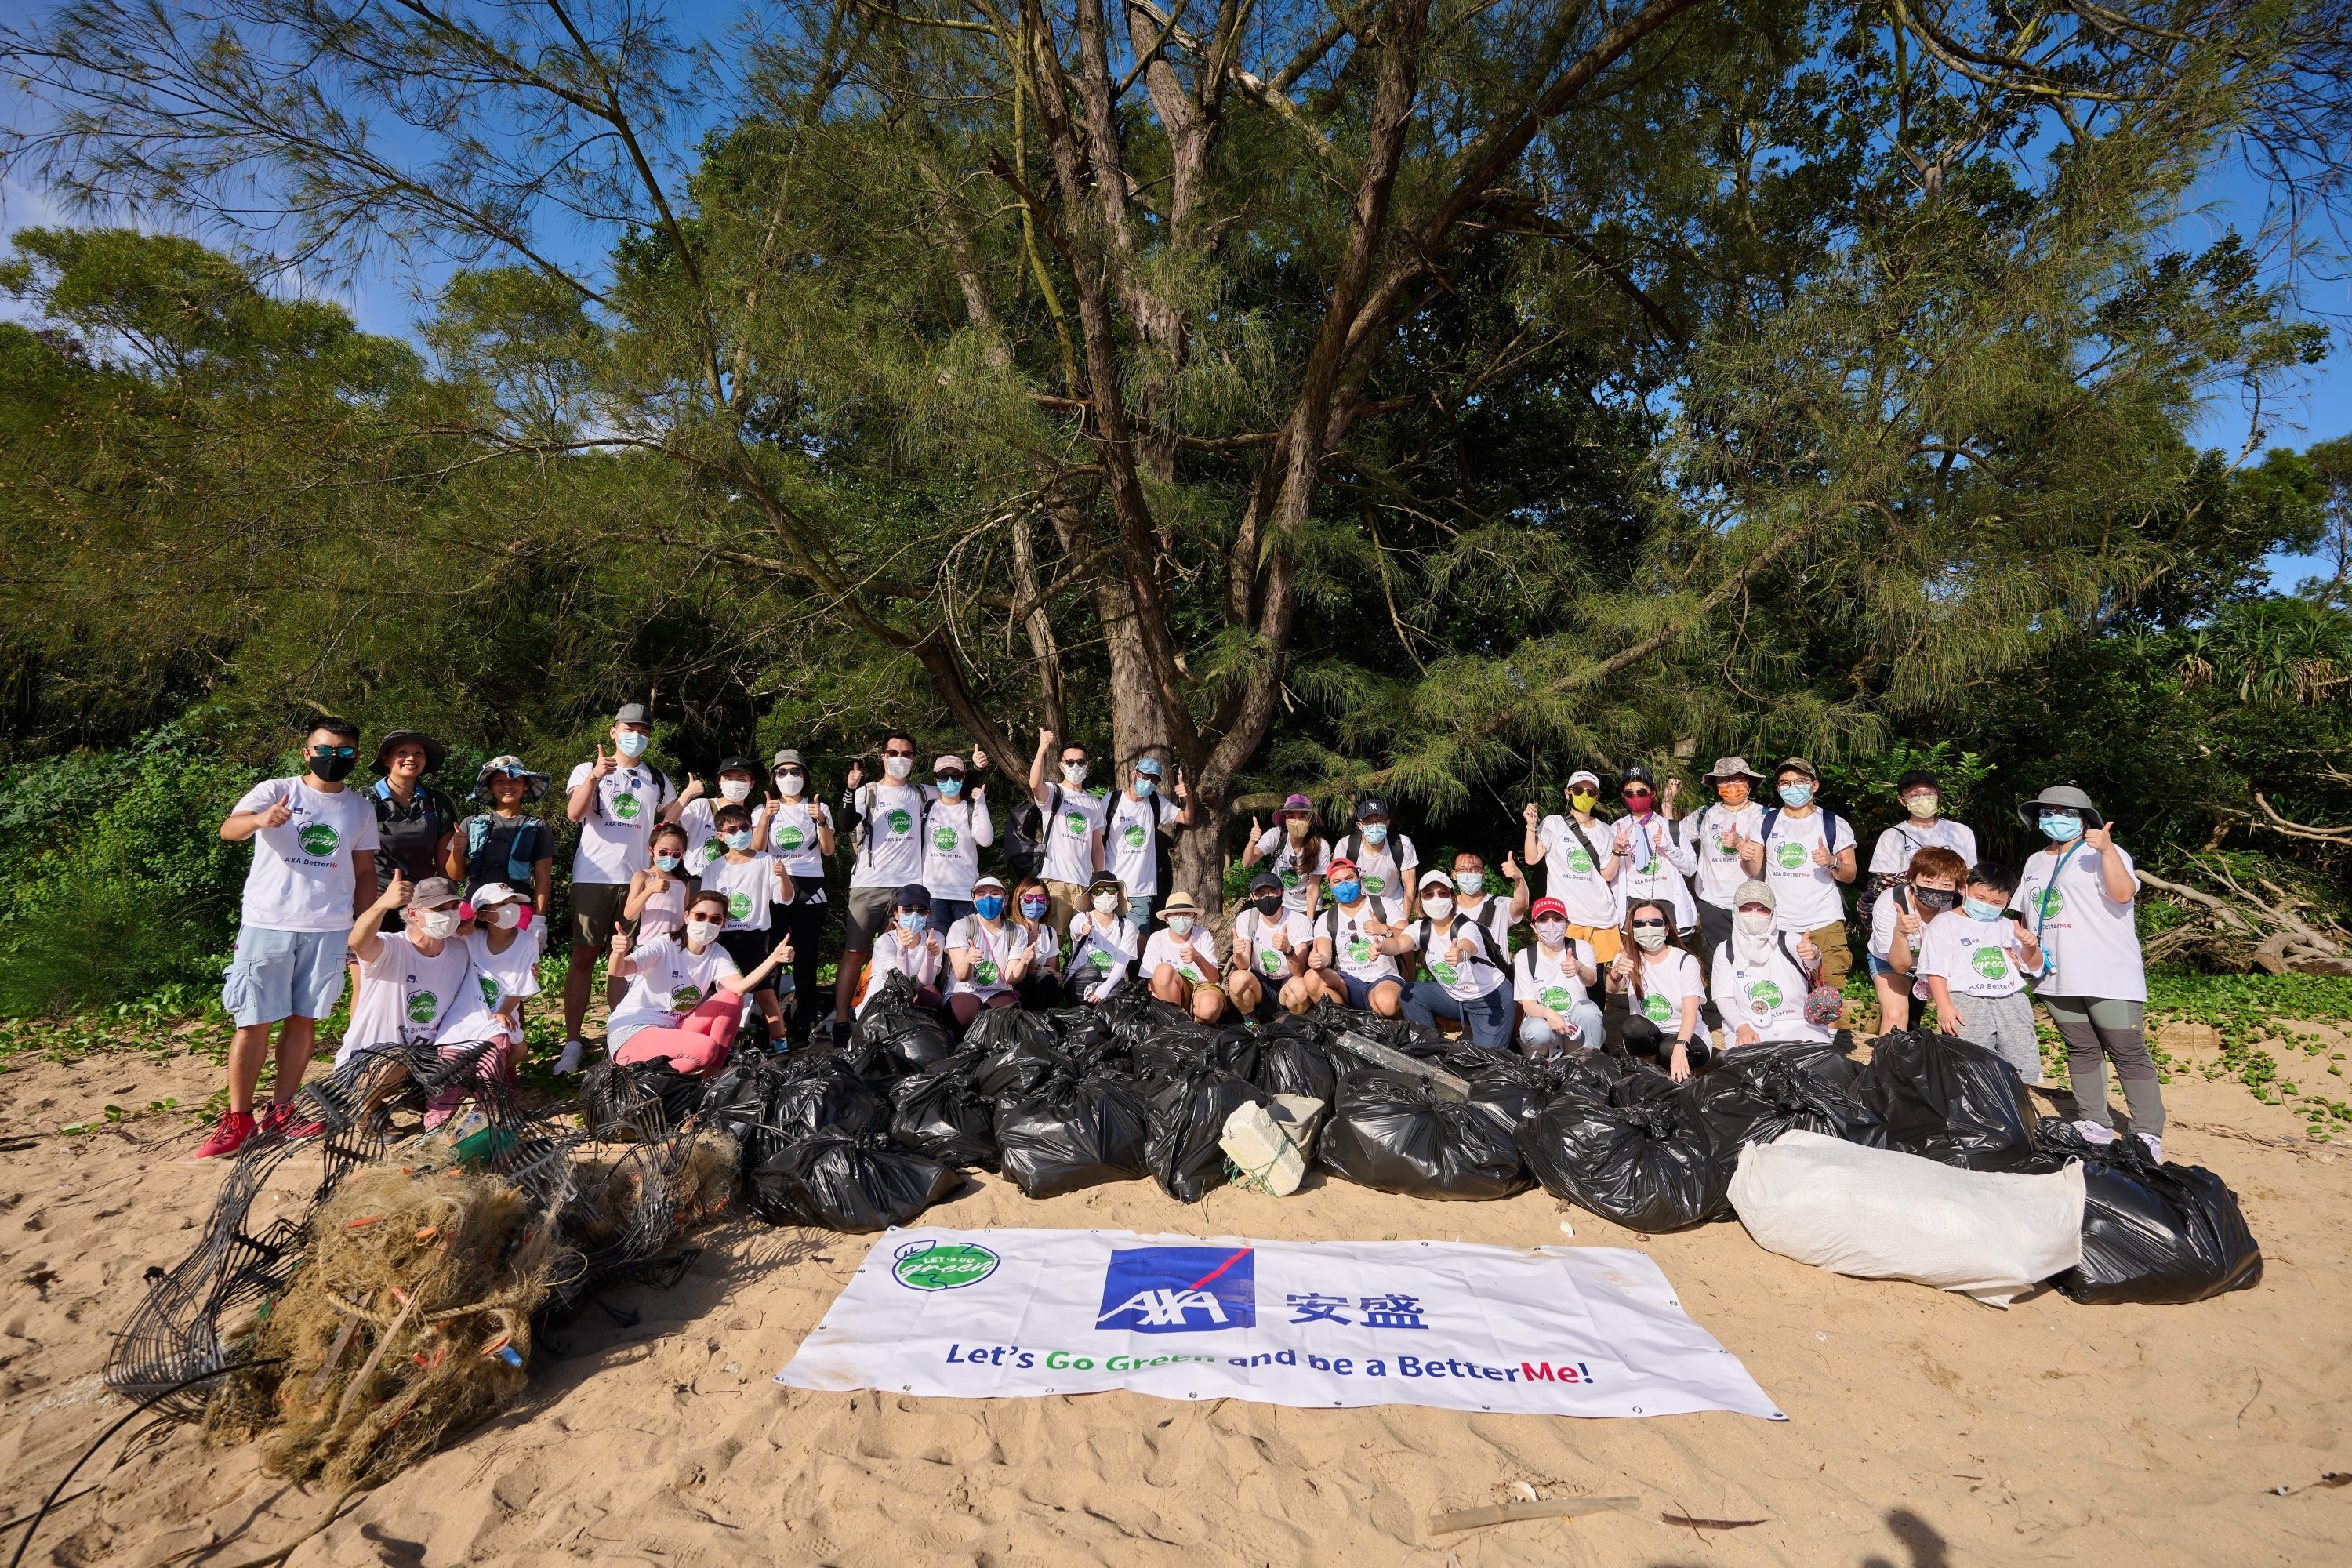 AXA Management and Employees Conducted Beach Clean-up; 257 kg of Coastal Wastes Removed to Protect The Environment